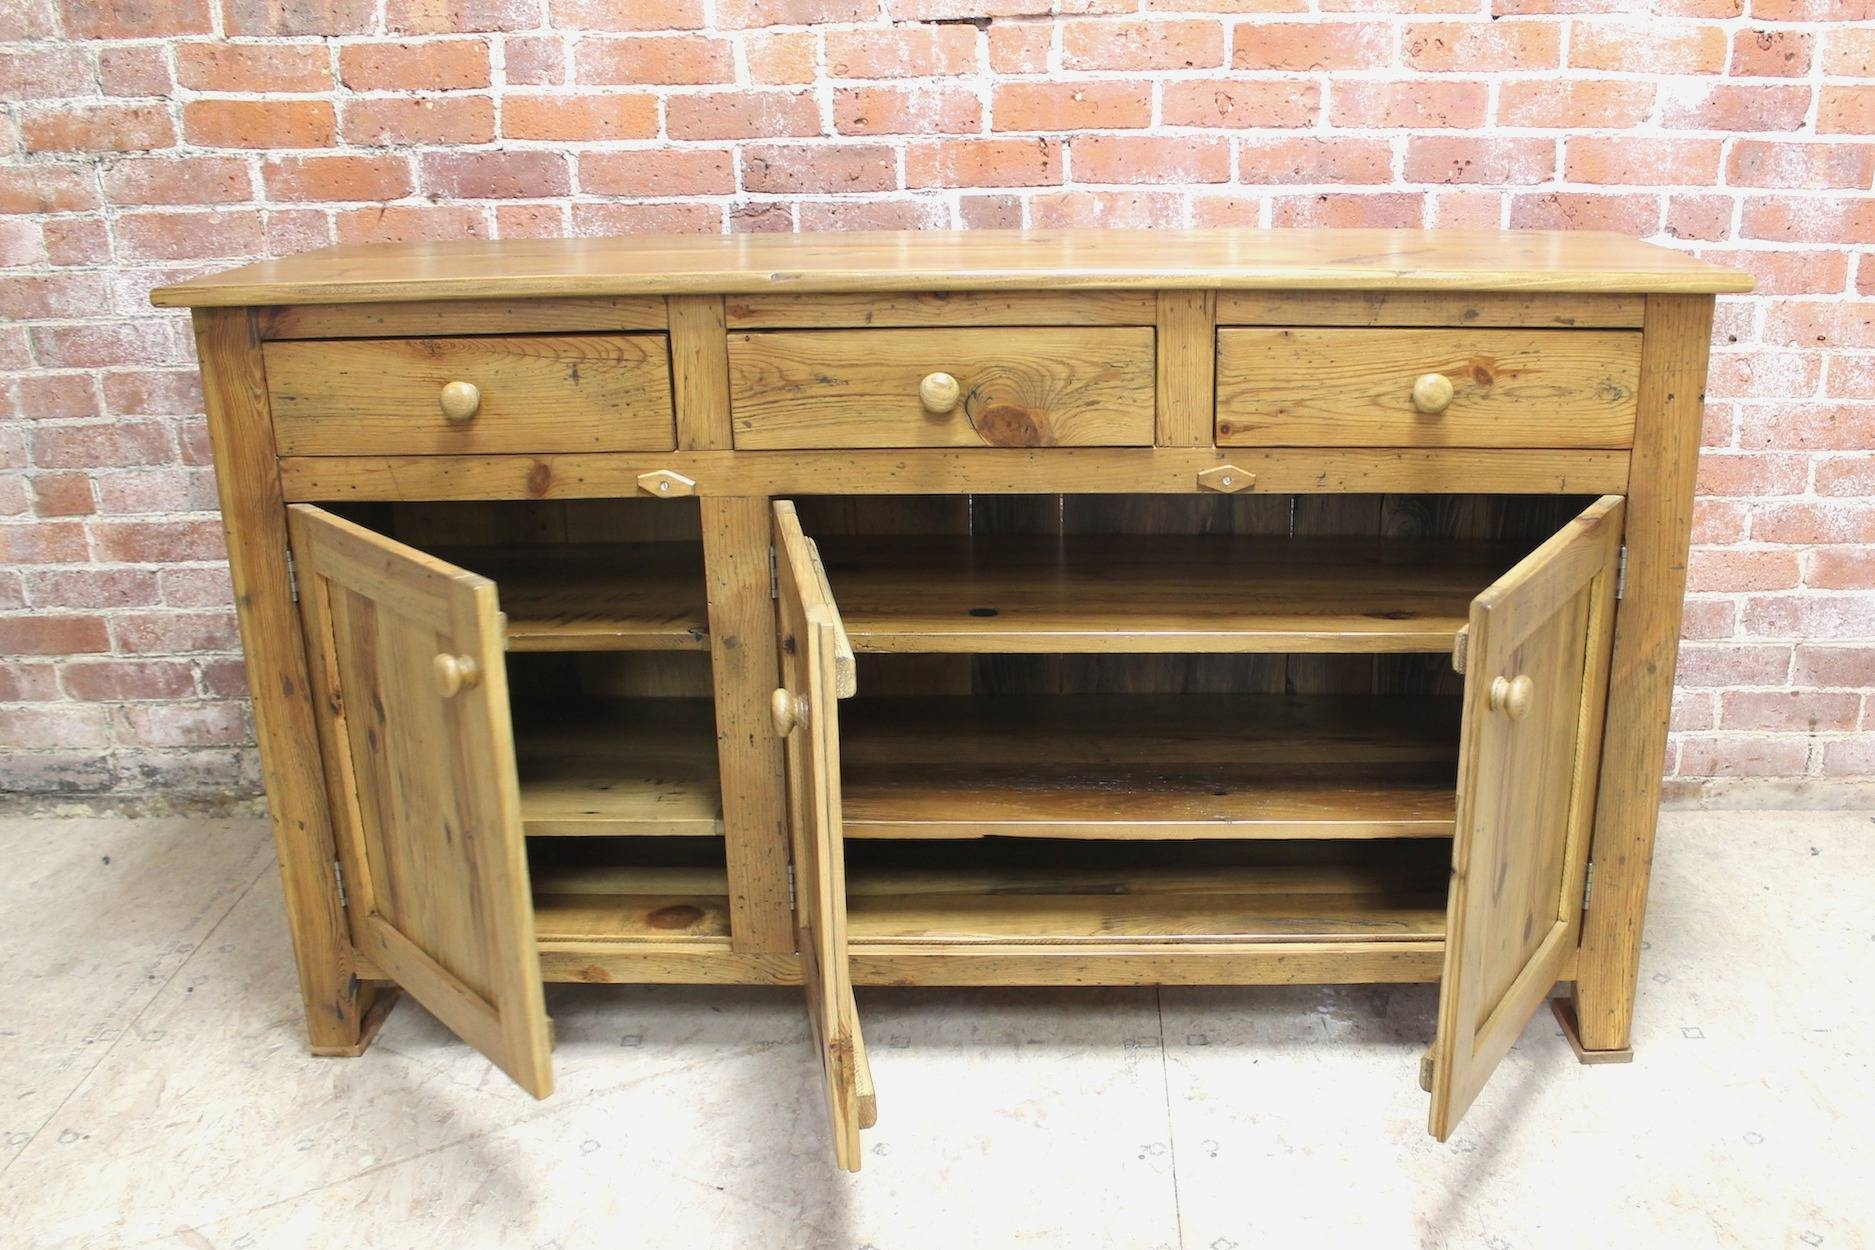 Pine Sideboards And Buffets: Pine Sideboards And Buffets Wonderful Within Pine Sideboards And Buffets (#11 of 15)